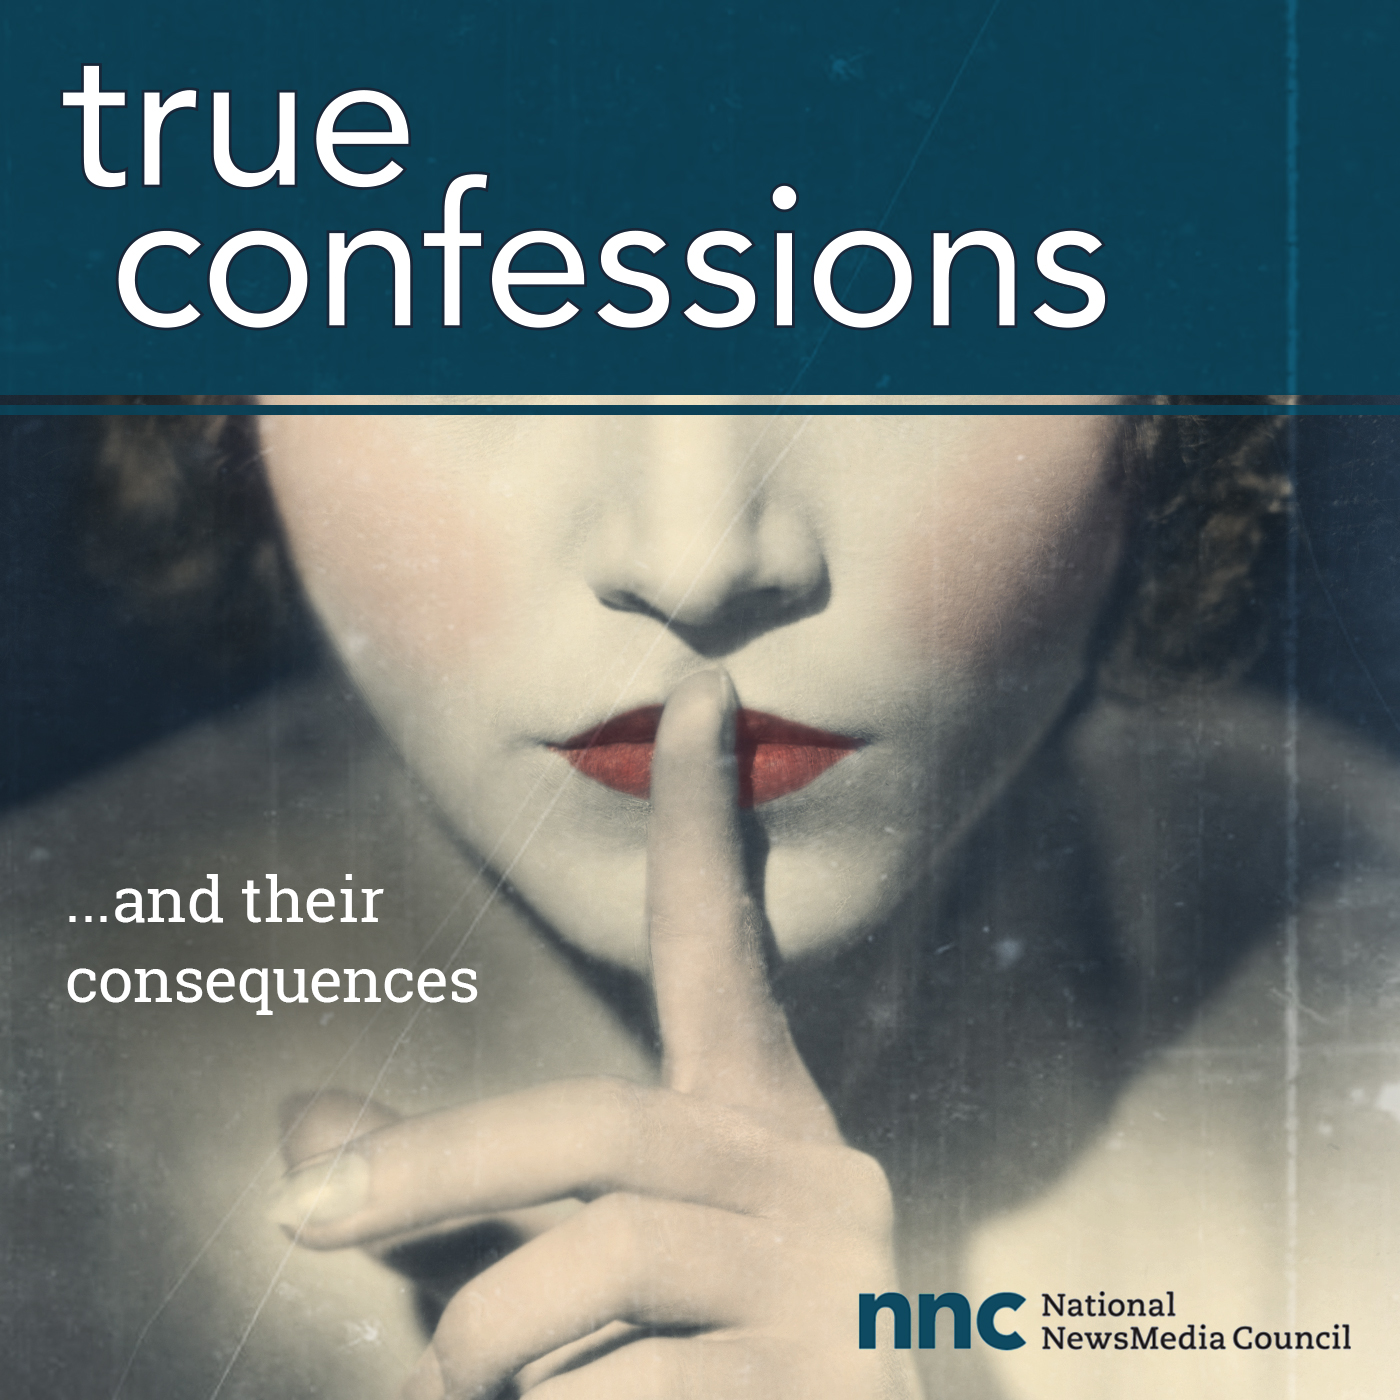 National NewsMedia Council debuts new 'True Confessions' podcast